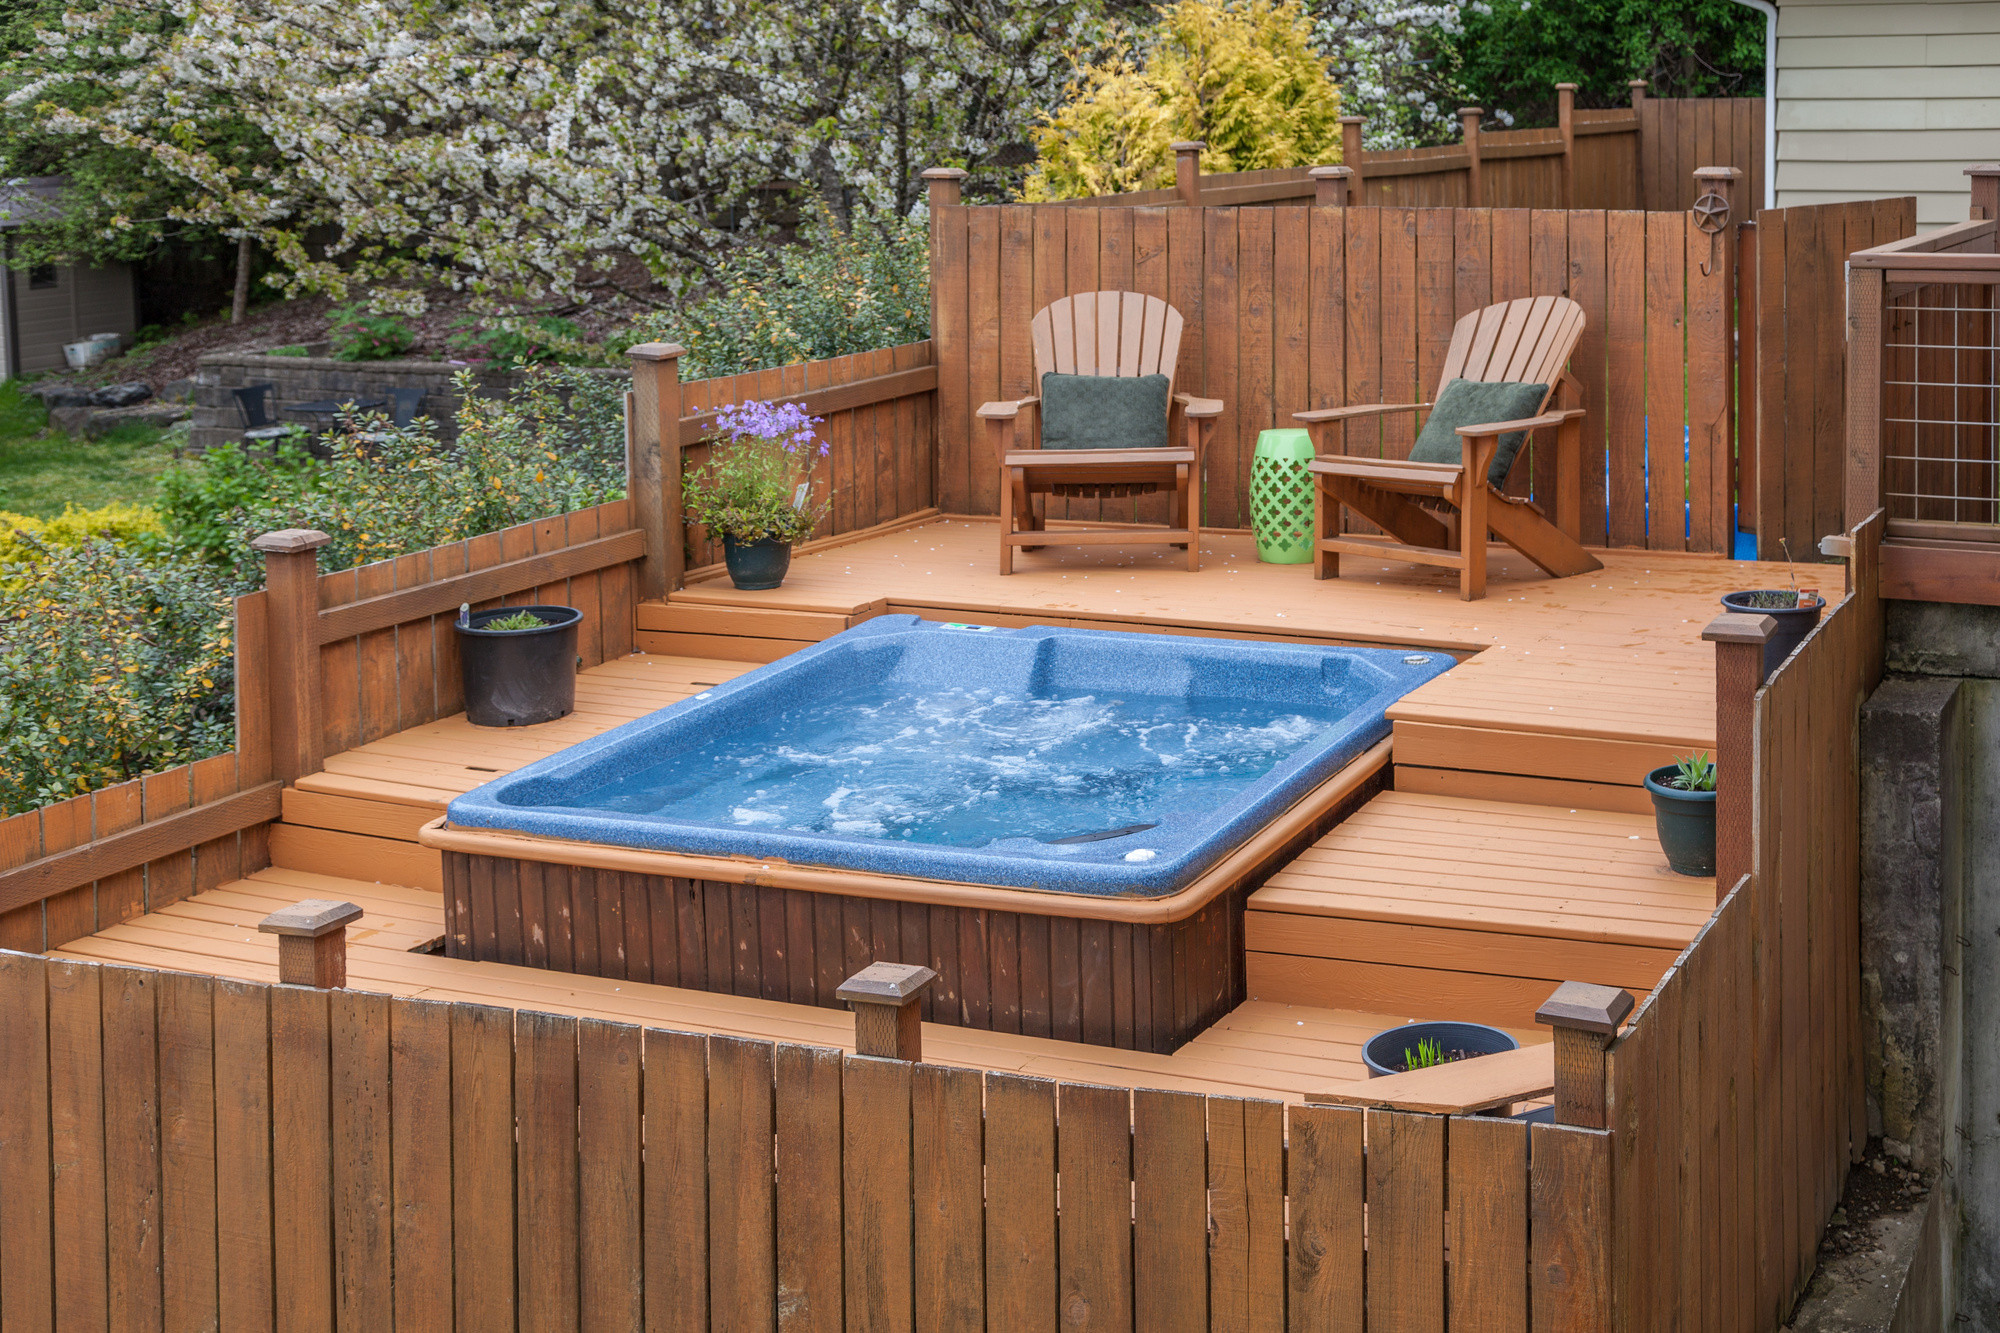 Best ideas about Outdoor Hot Tubs . Save or Pin Installing an Outdoor Hot Tub Considerations Now.